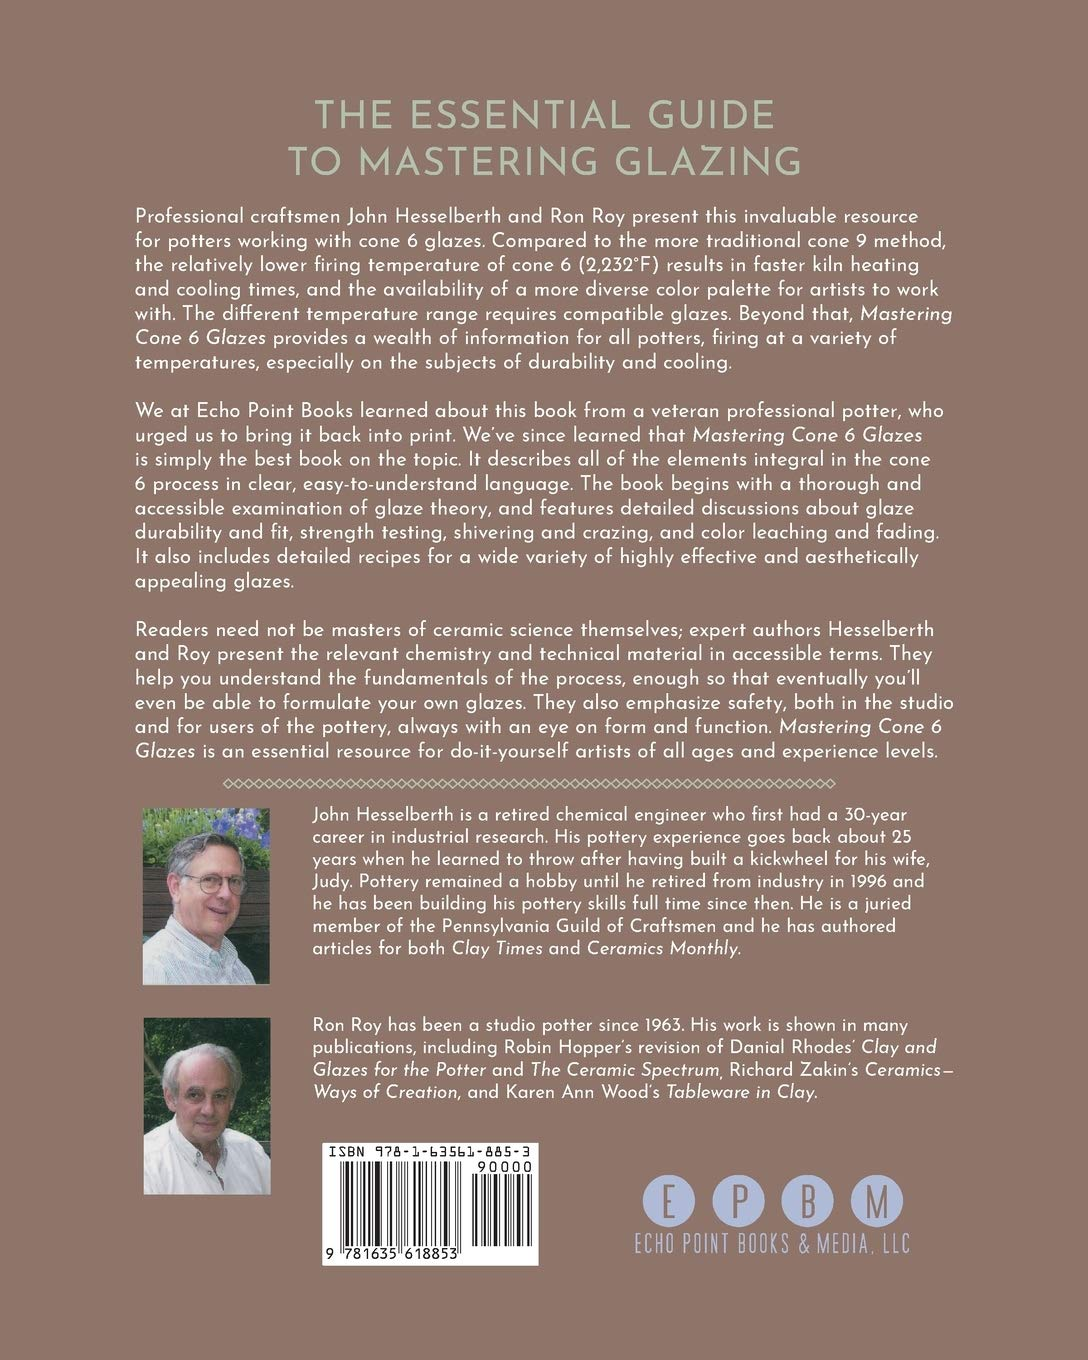 Mastering Cone 6 Glazes: Improving Durability, Fit and ...